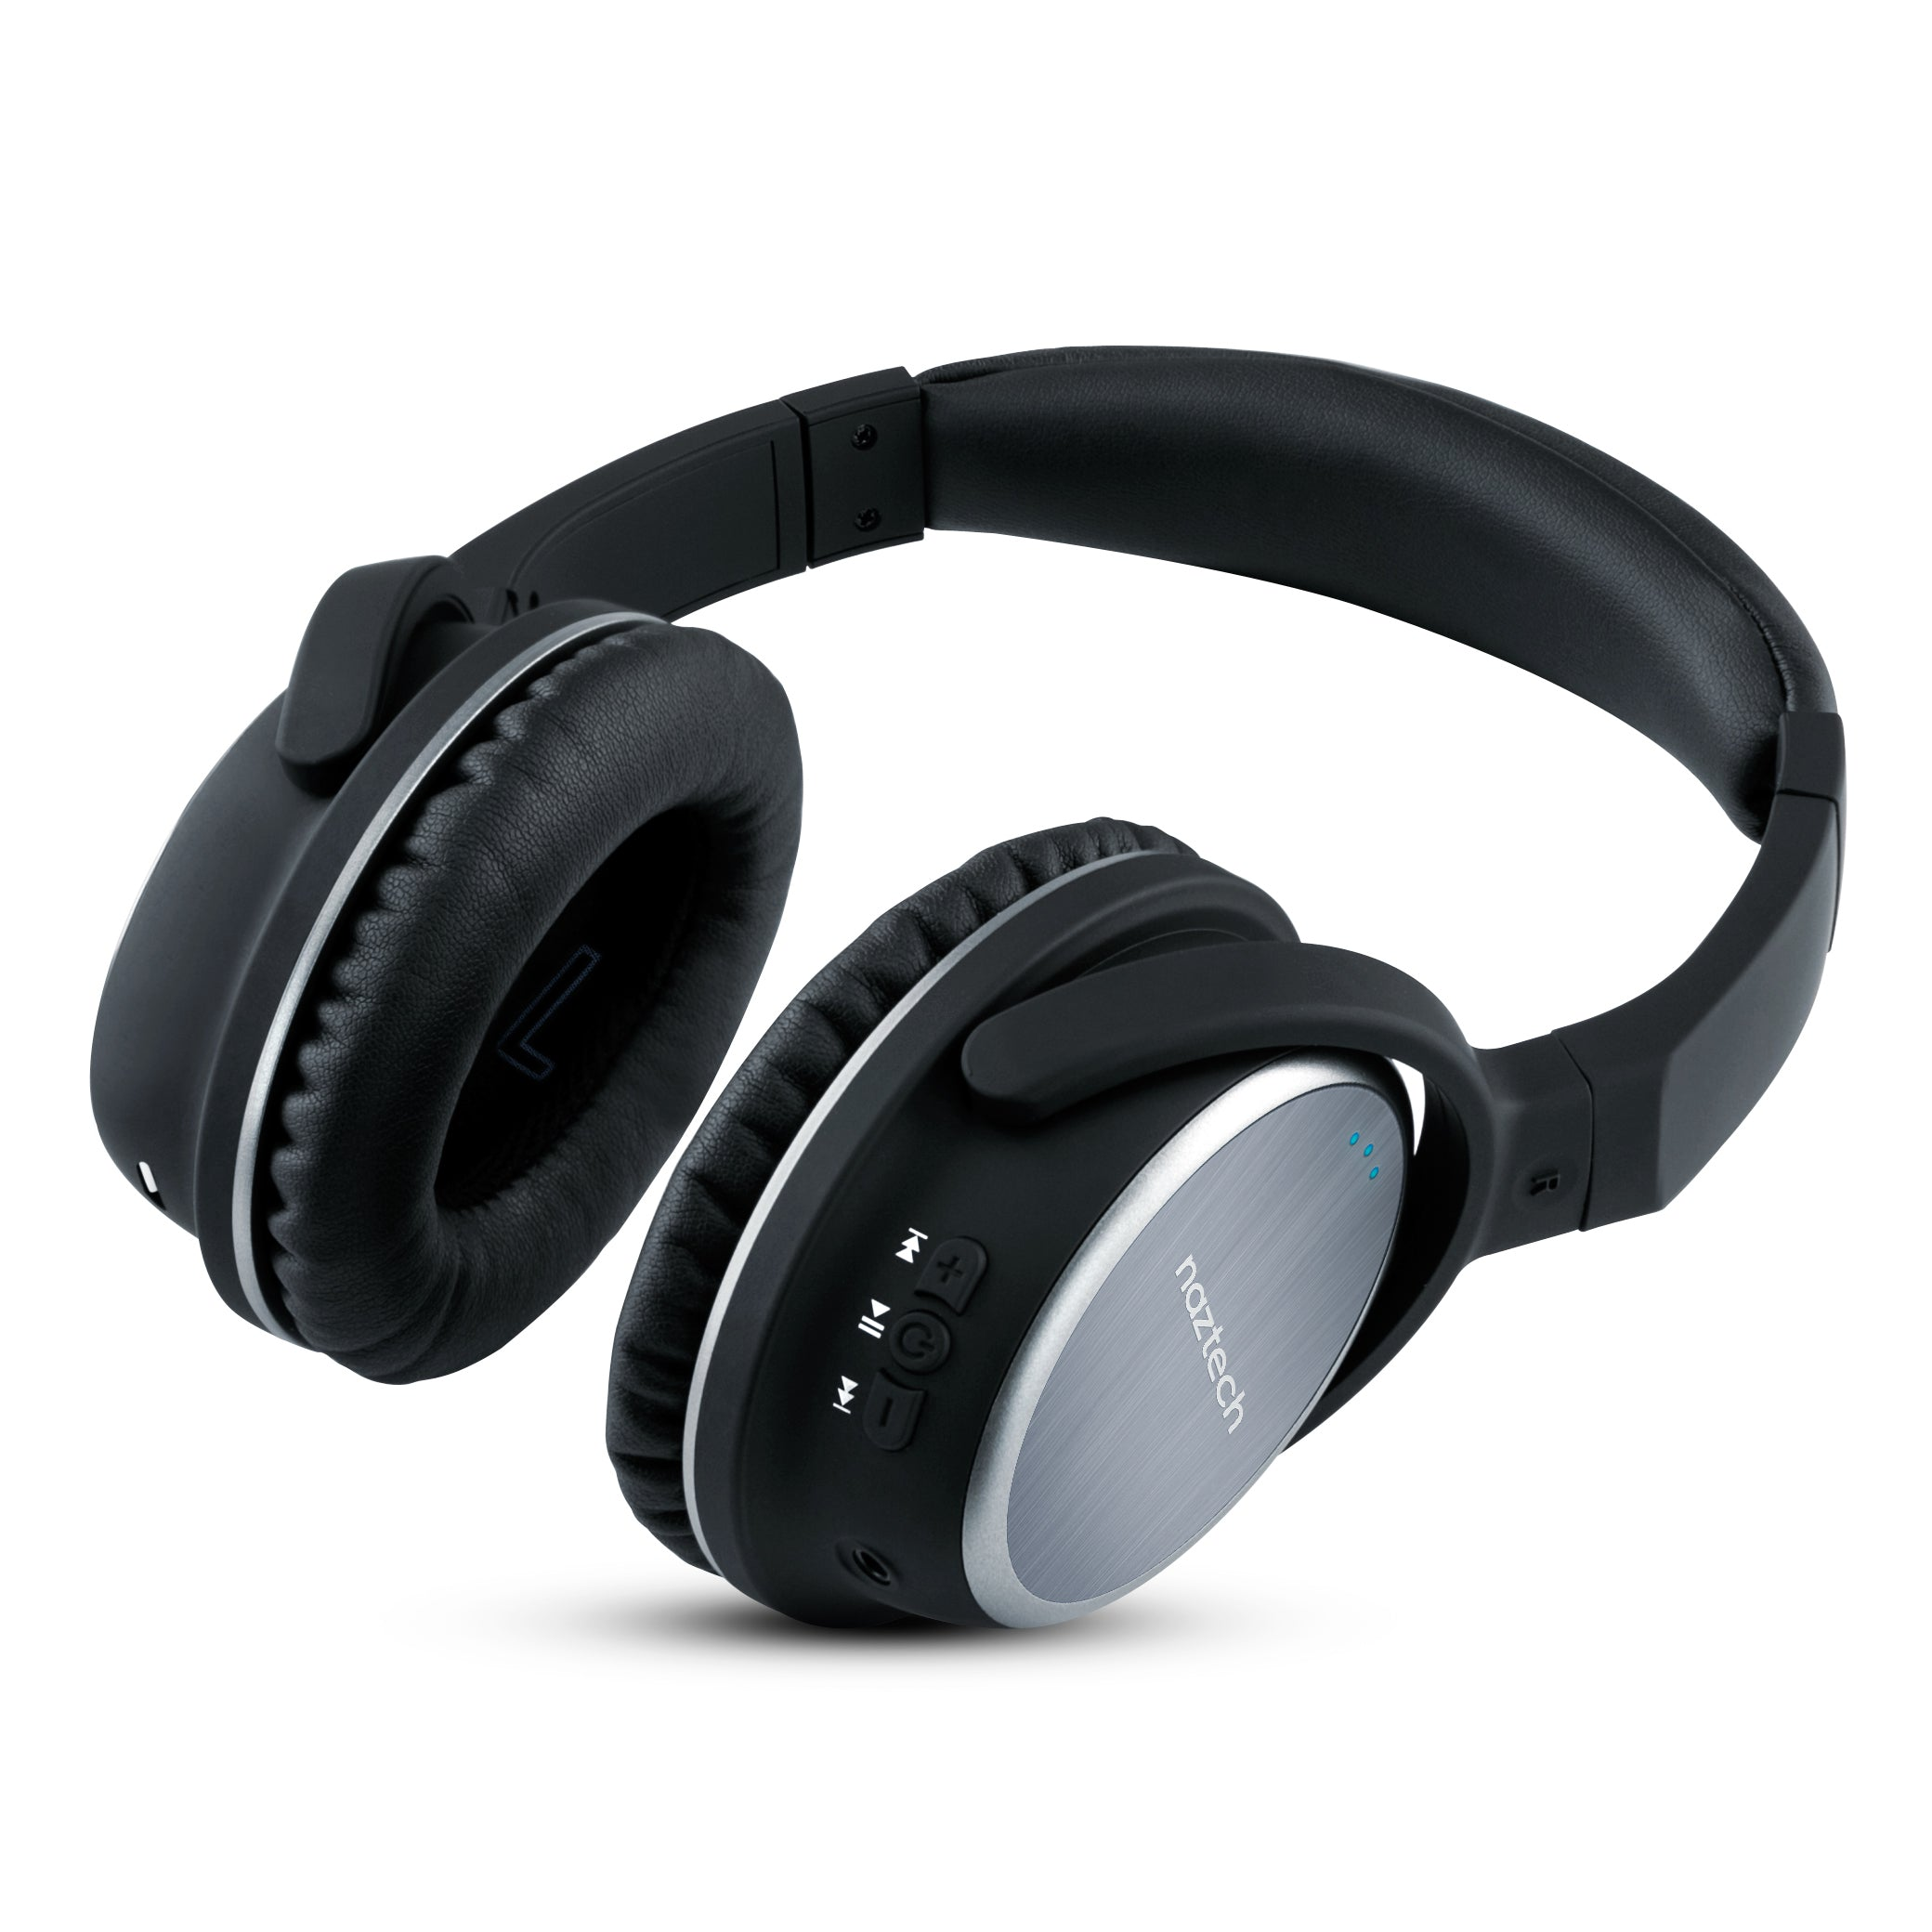 XJ-500 Wireless Headphones